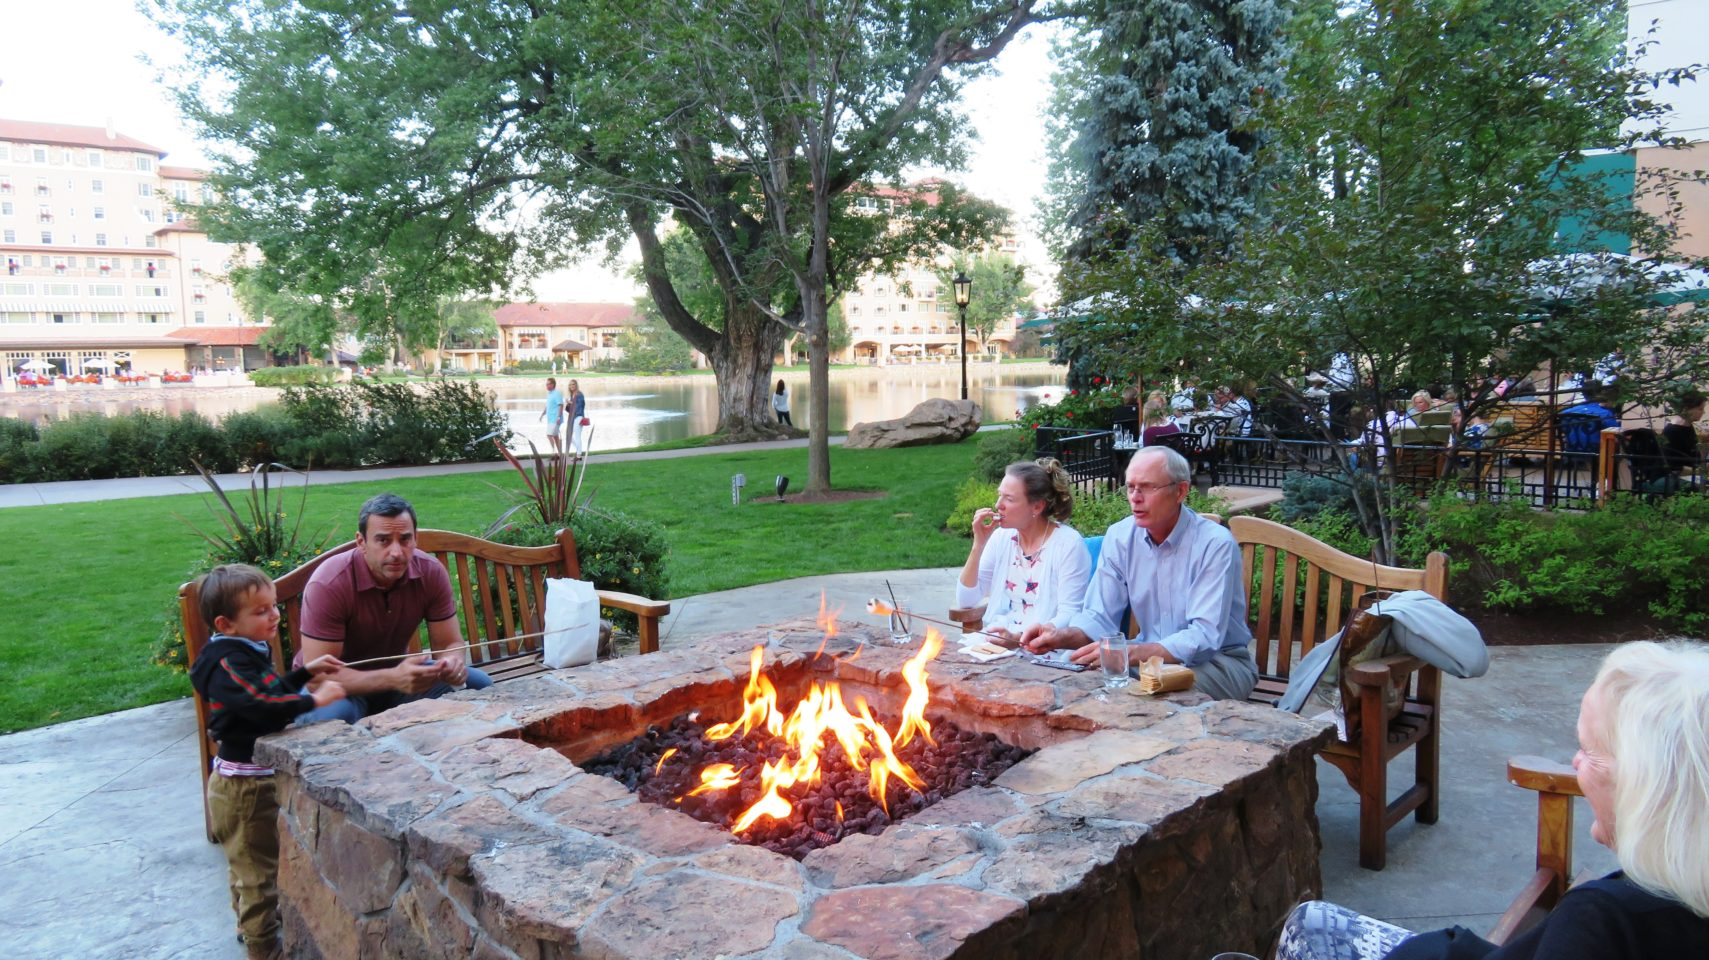 Old and young alike enjoy roasting marshmallows at The Broadmoor